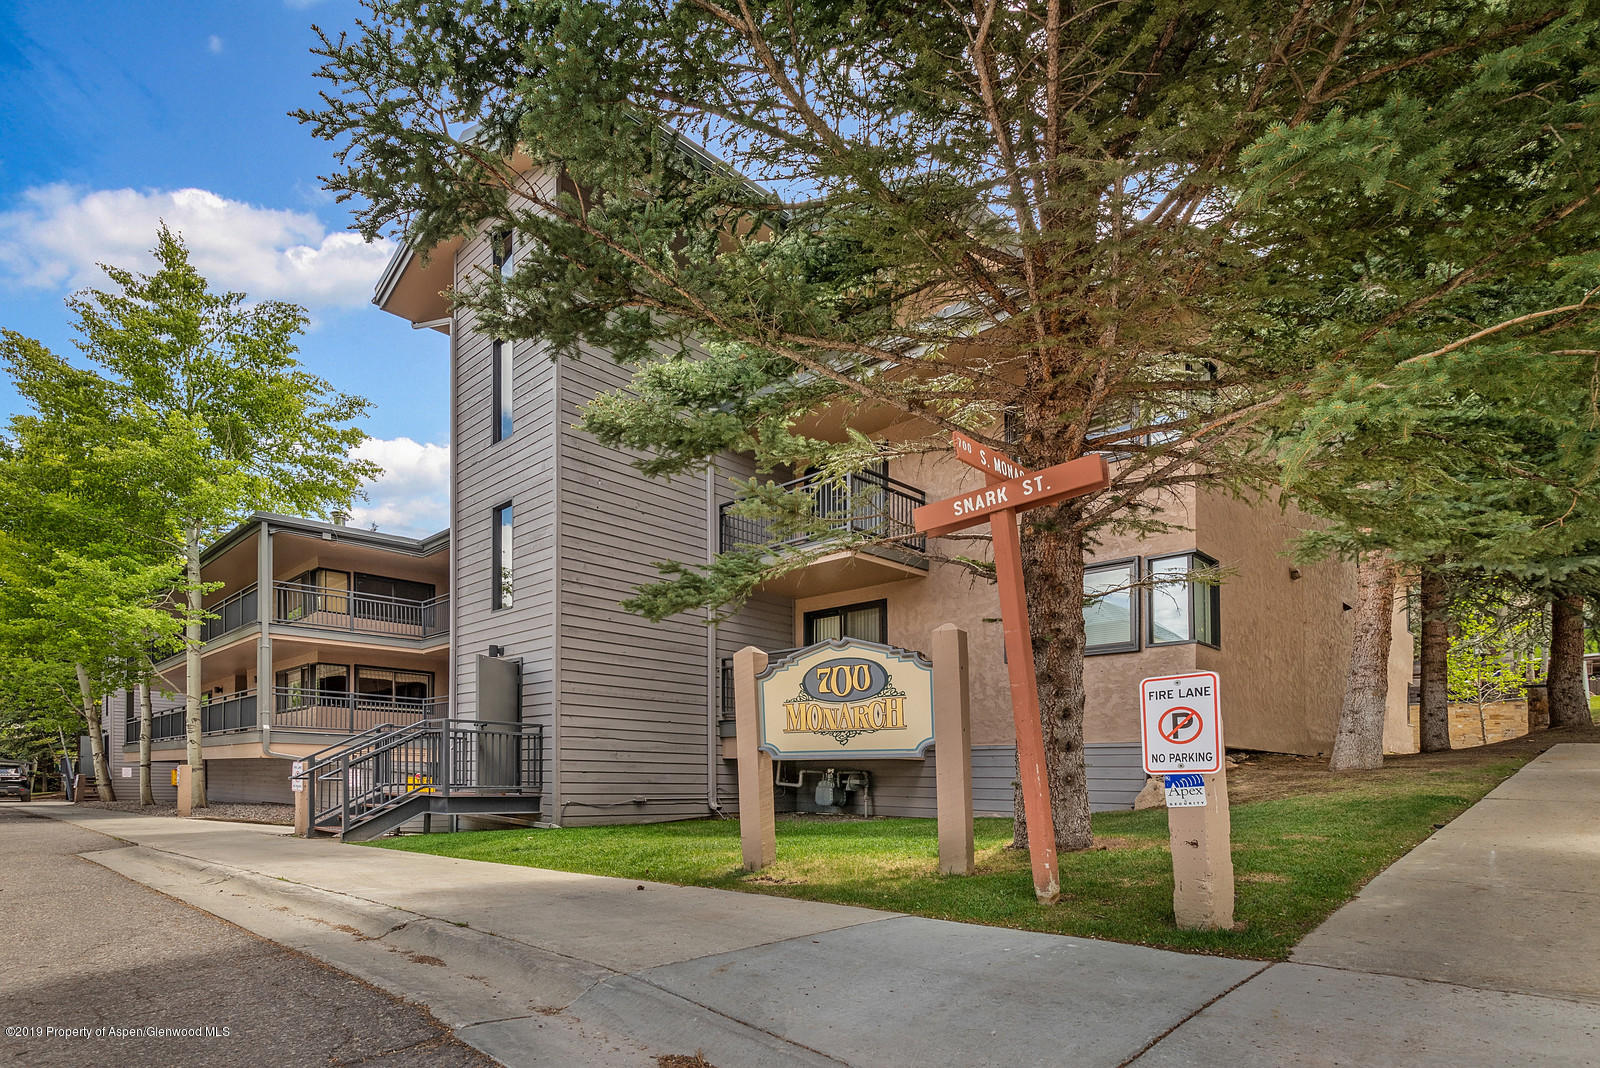 700 Monarch Street, #302 - Aspen, Colorado